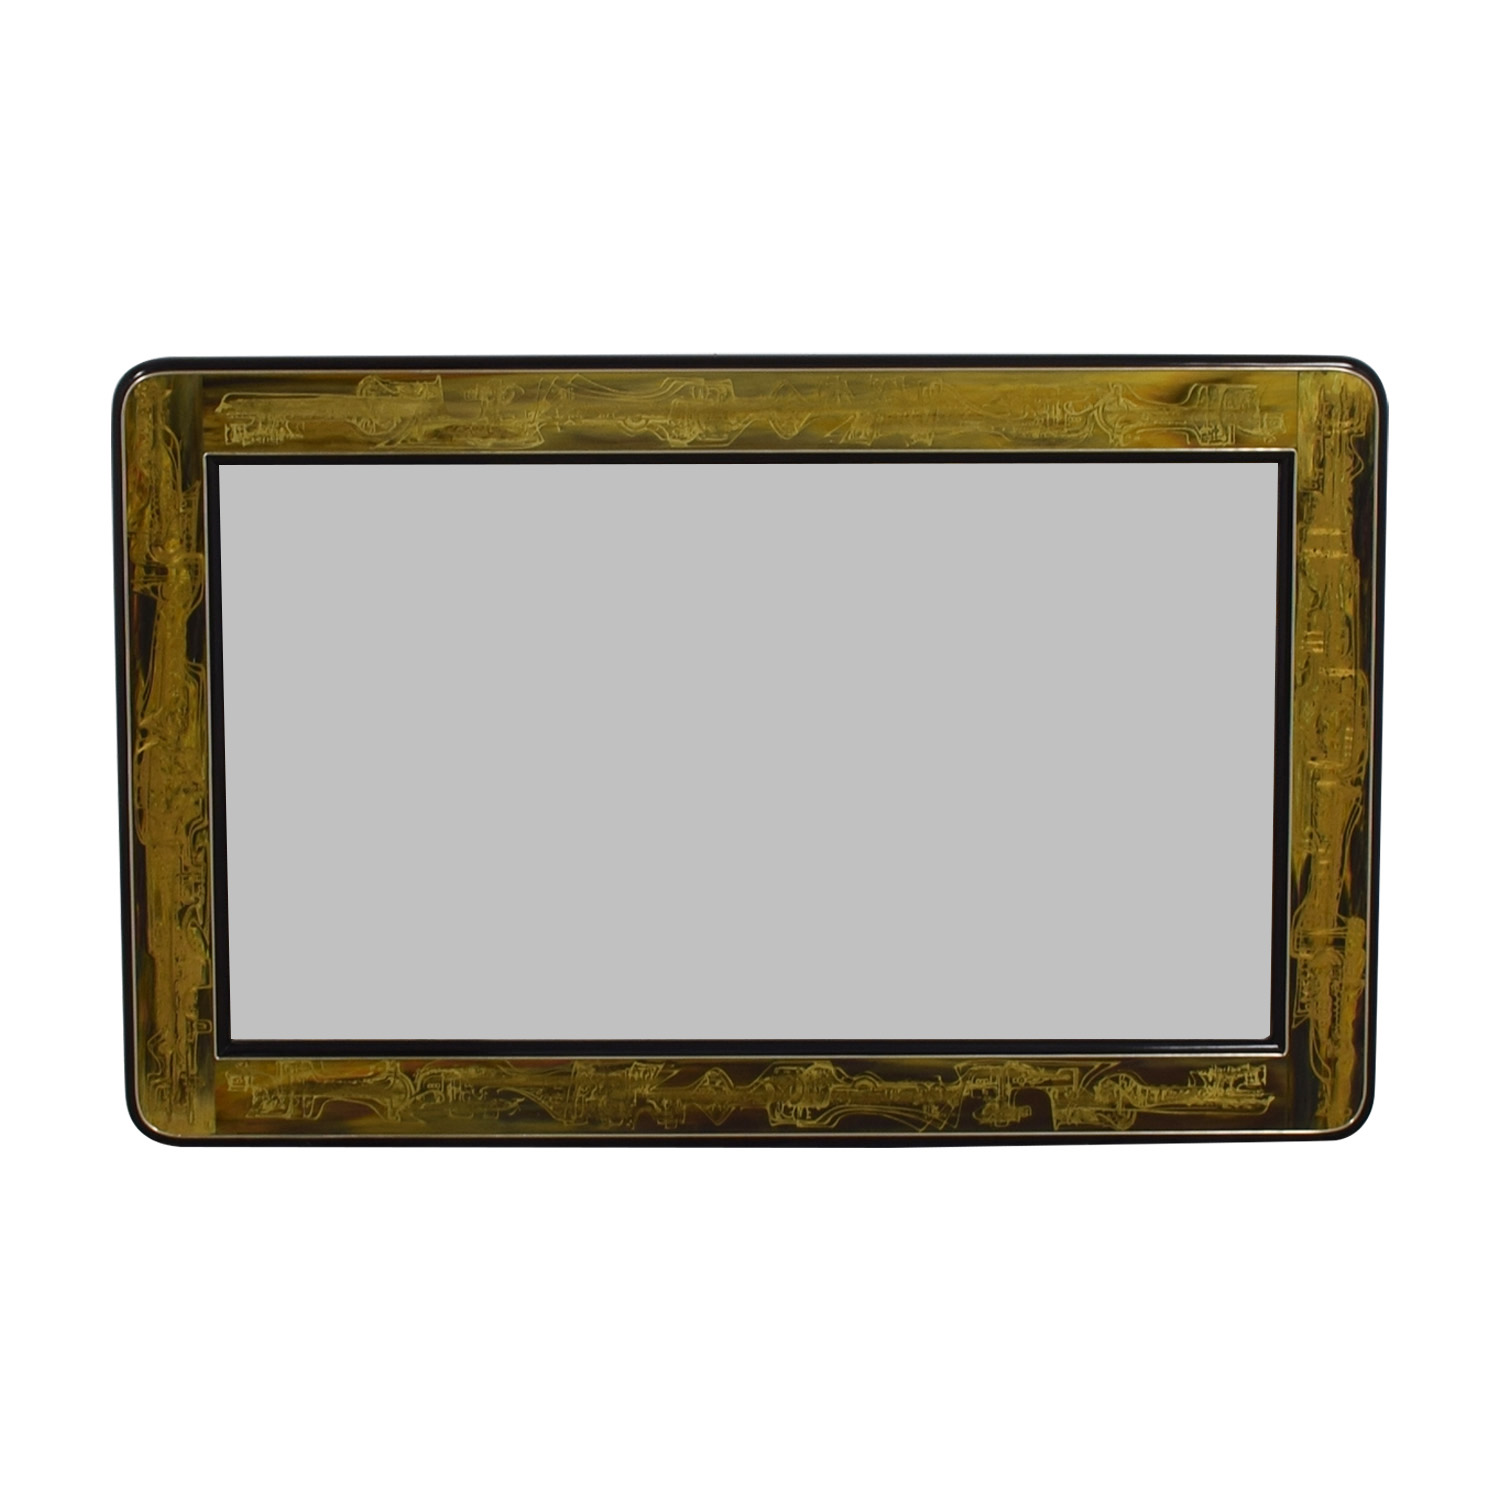 Mastercraft Mastercraft Bernhard Rohne Acid Etched Mirror Gold, Black